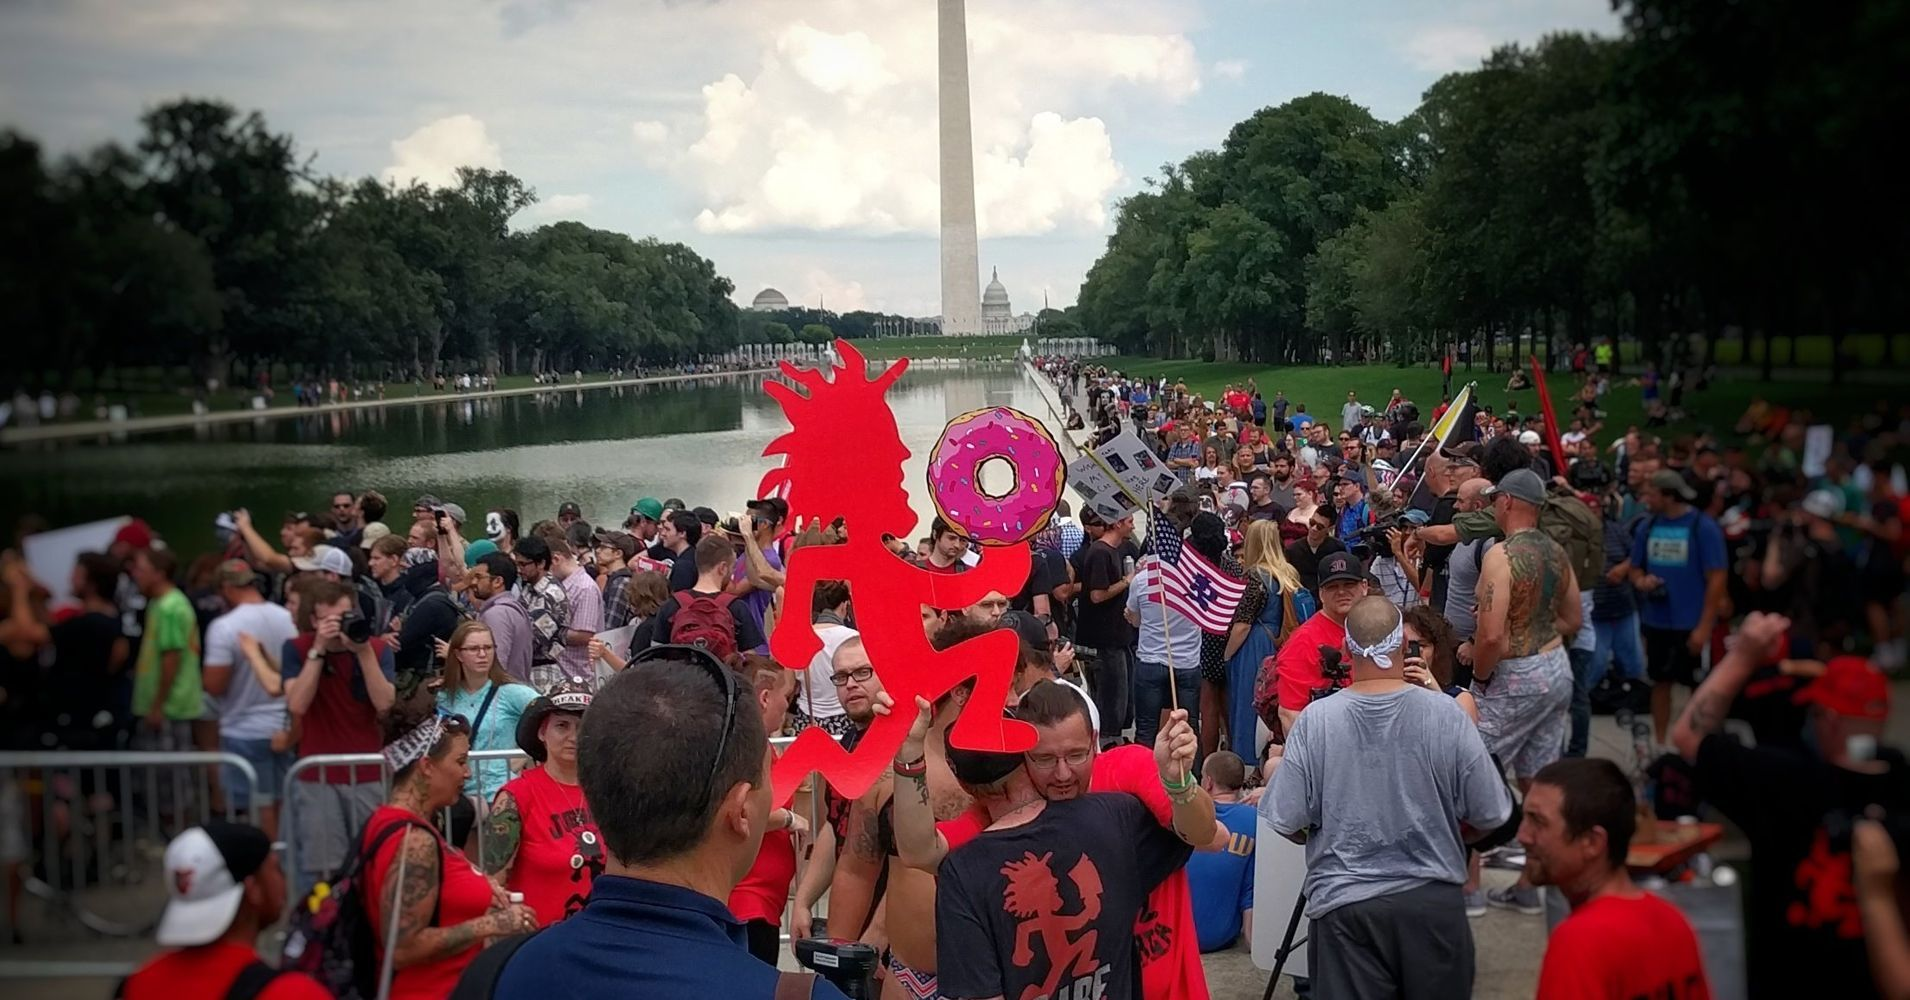 Juggalos Draw Bigger Crowd On The National Mall Than Pro-Trump Rally